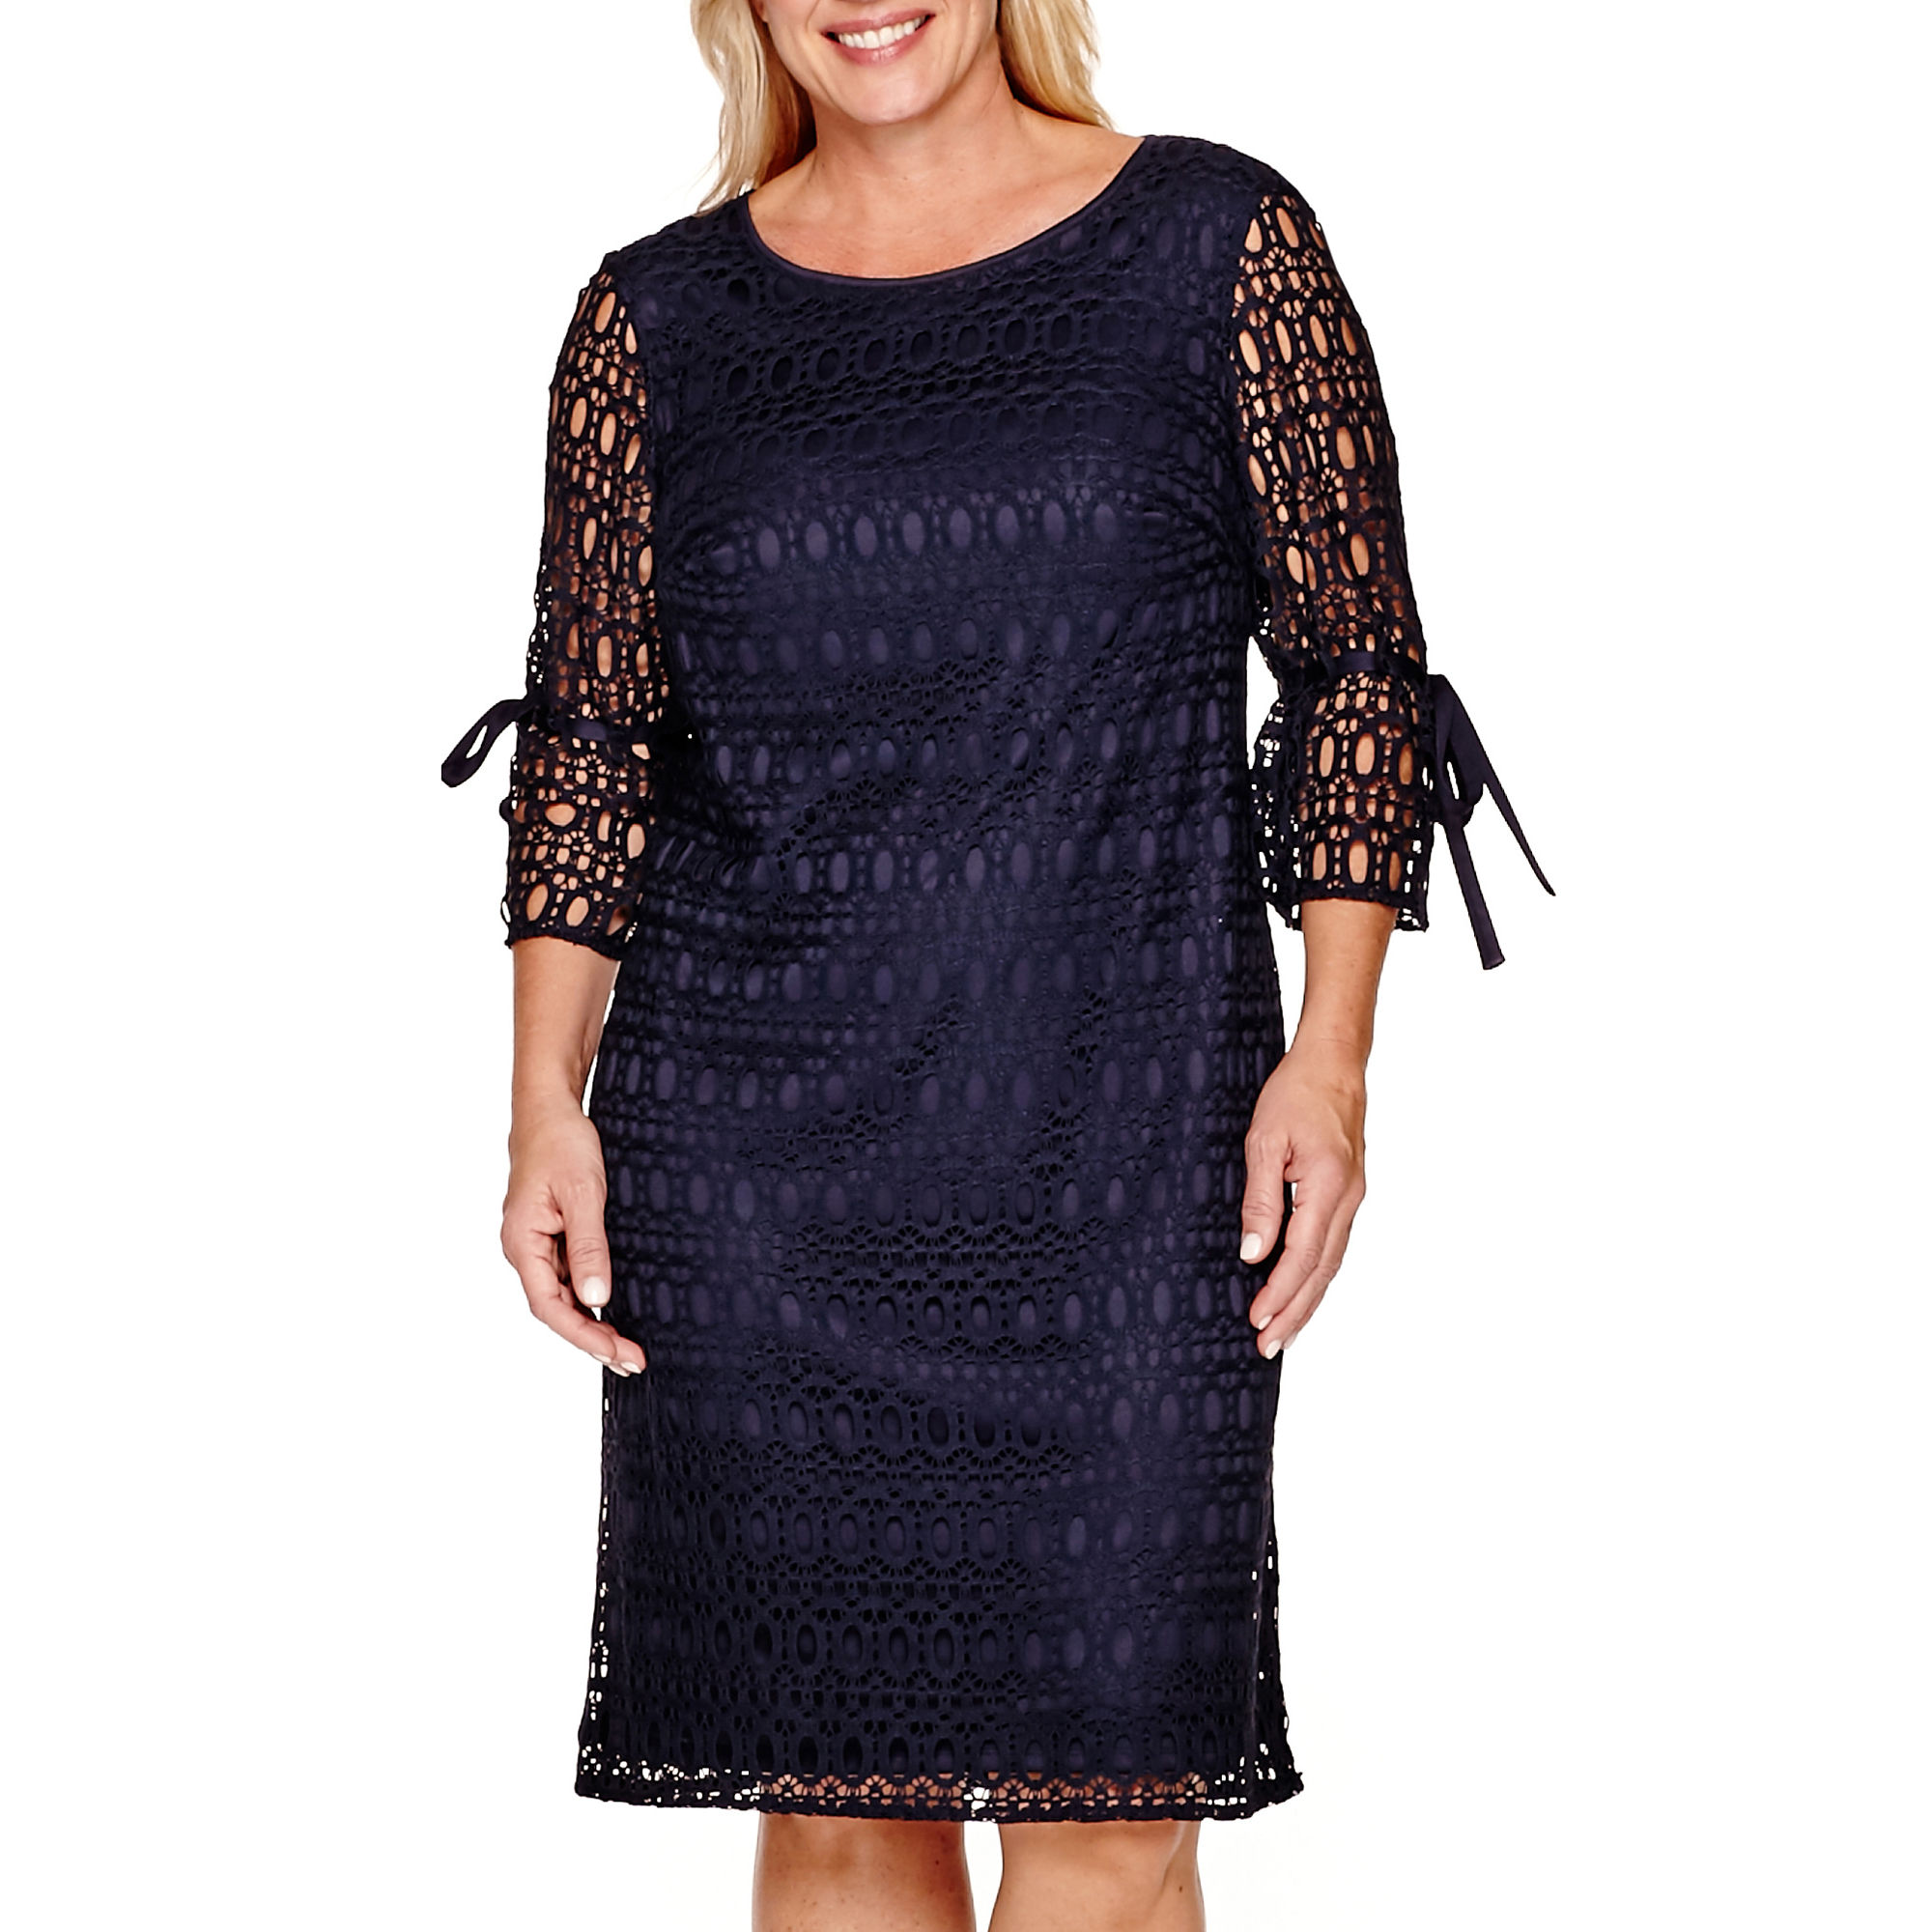 R & K Originals 3/4-Sleeve Lace Sheath Dress - Plus